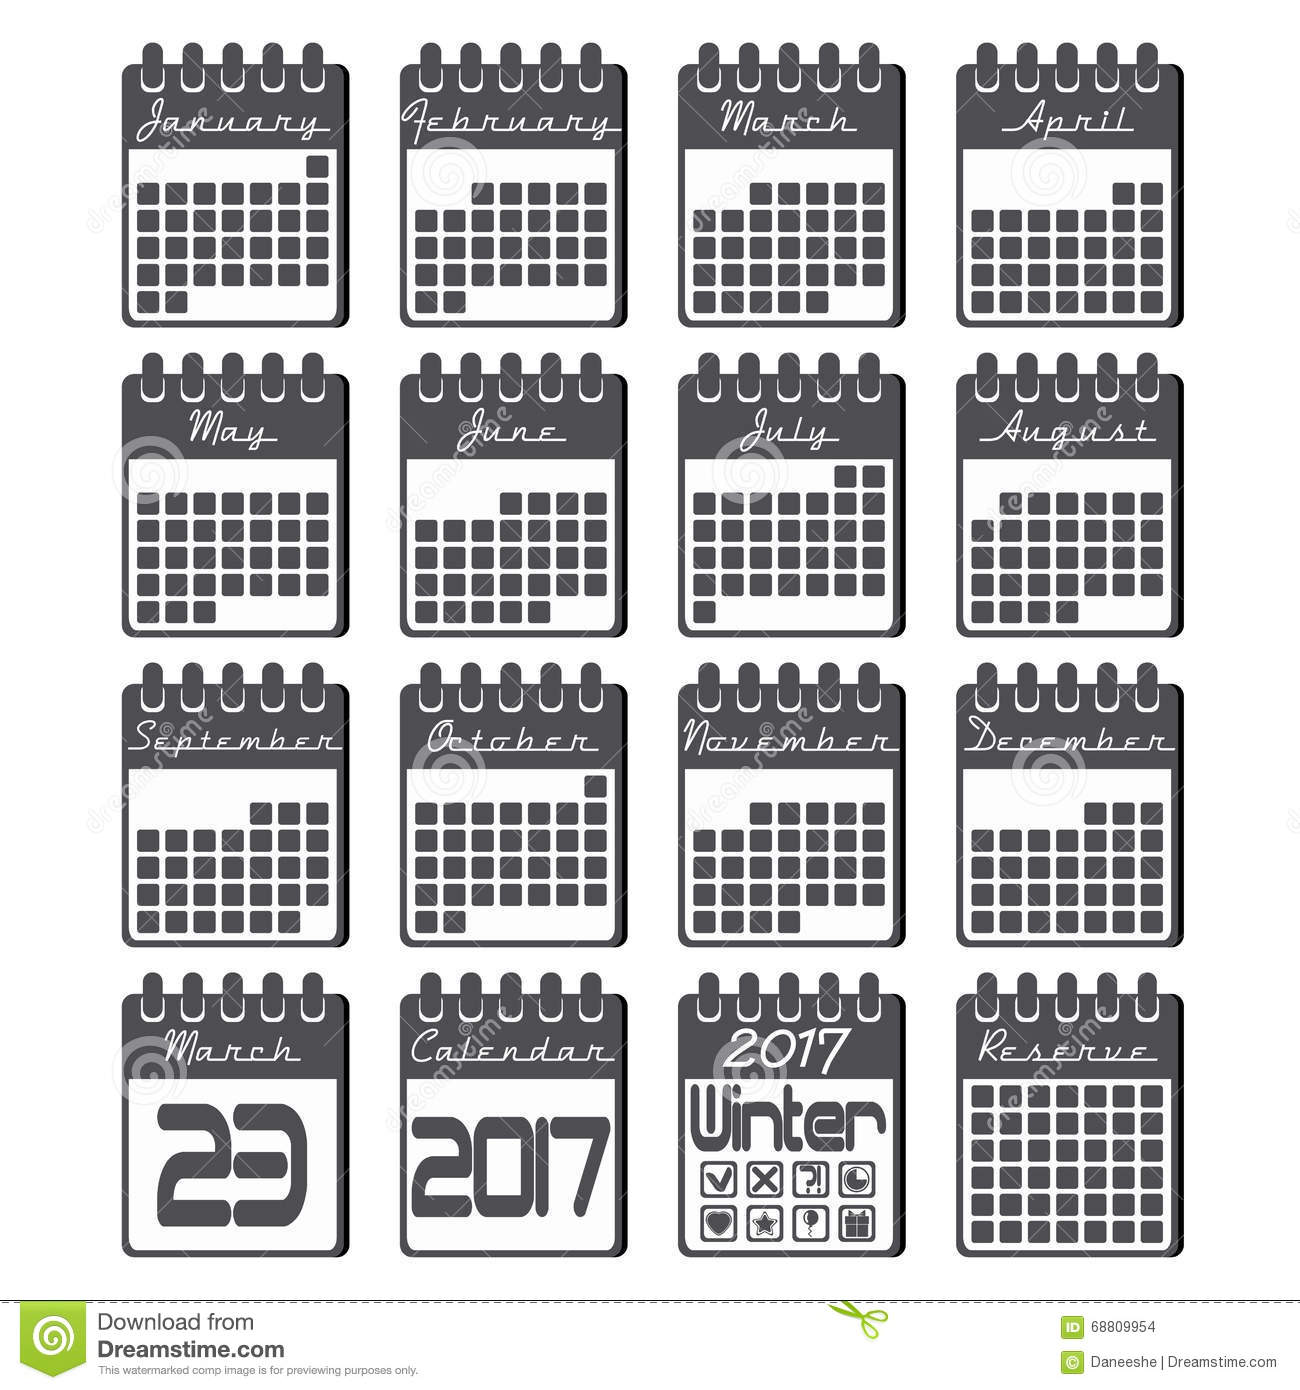 Calendar Flat Illustration : Calendar icons set for year in flat style stock